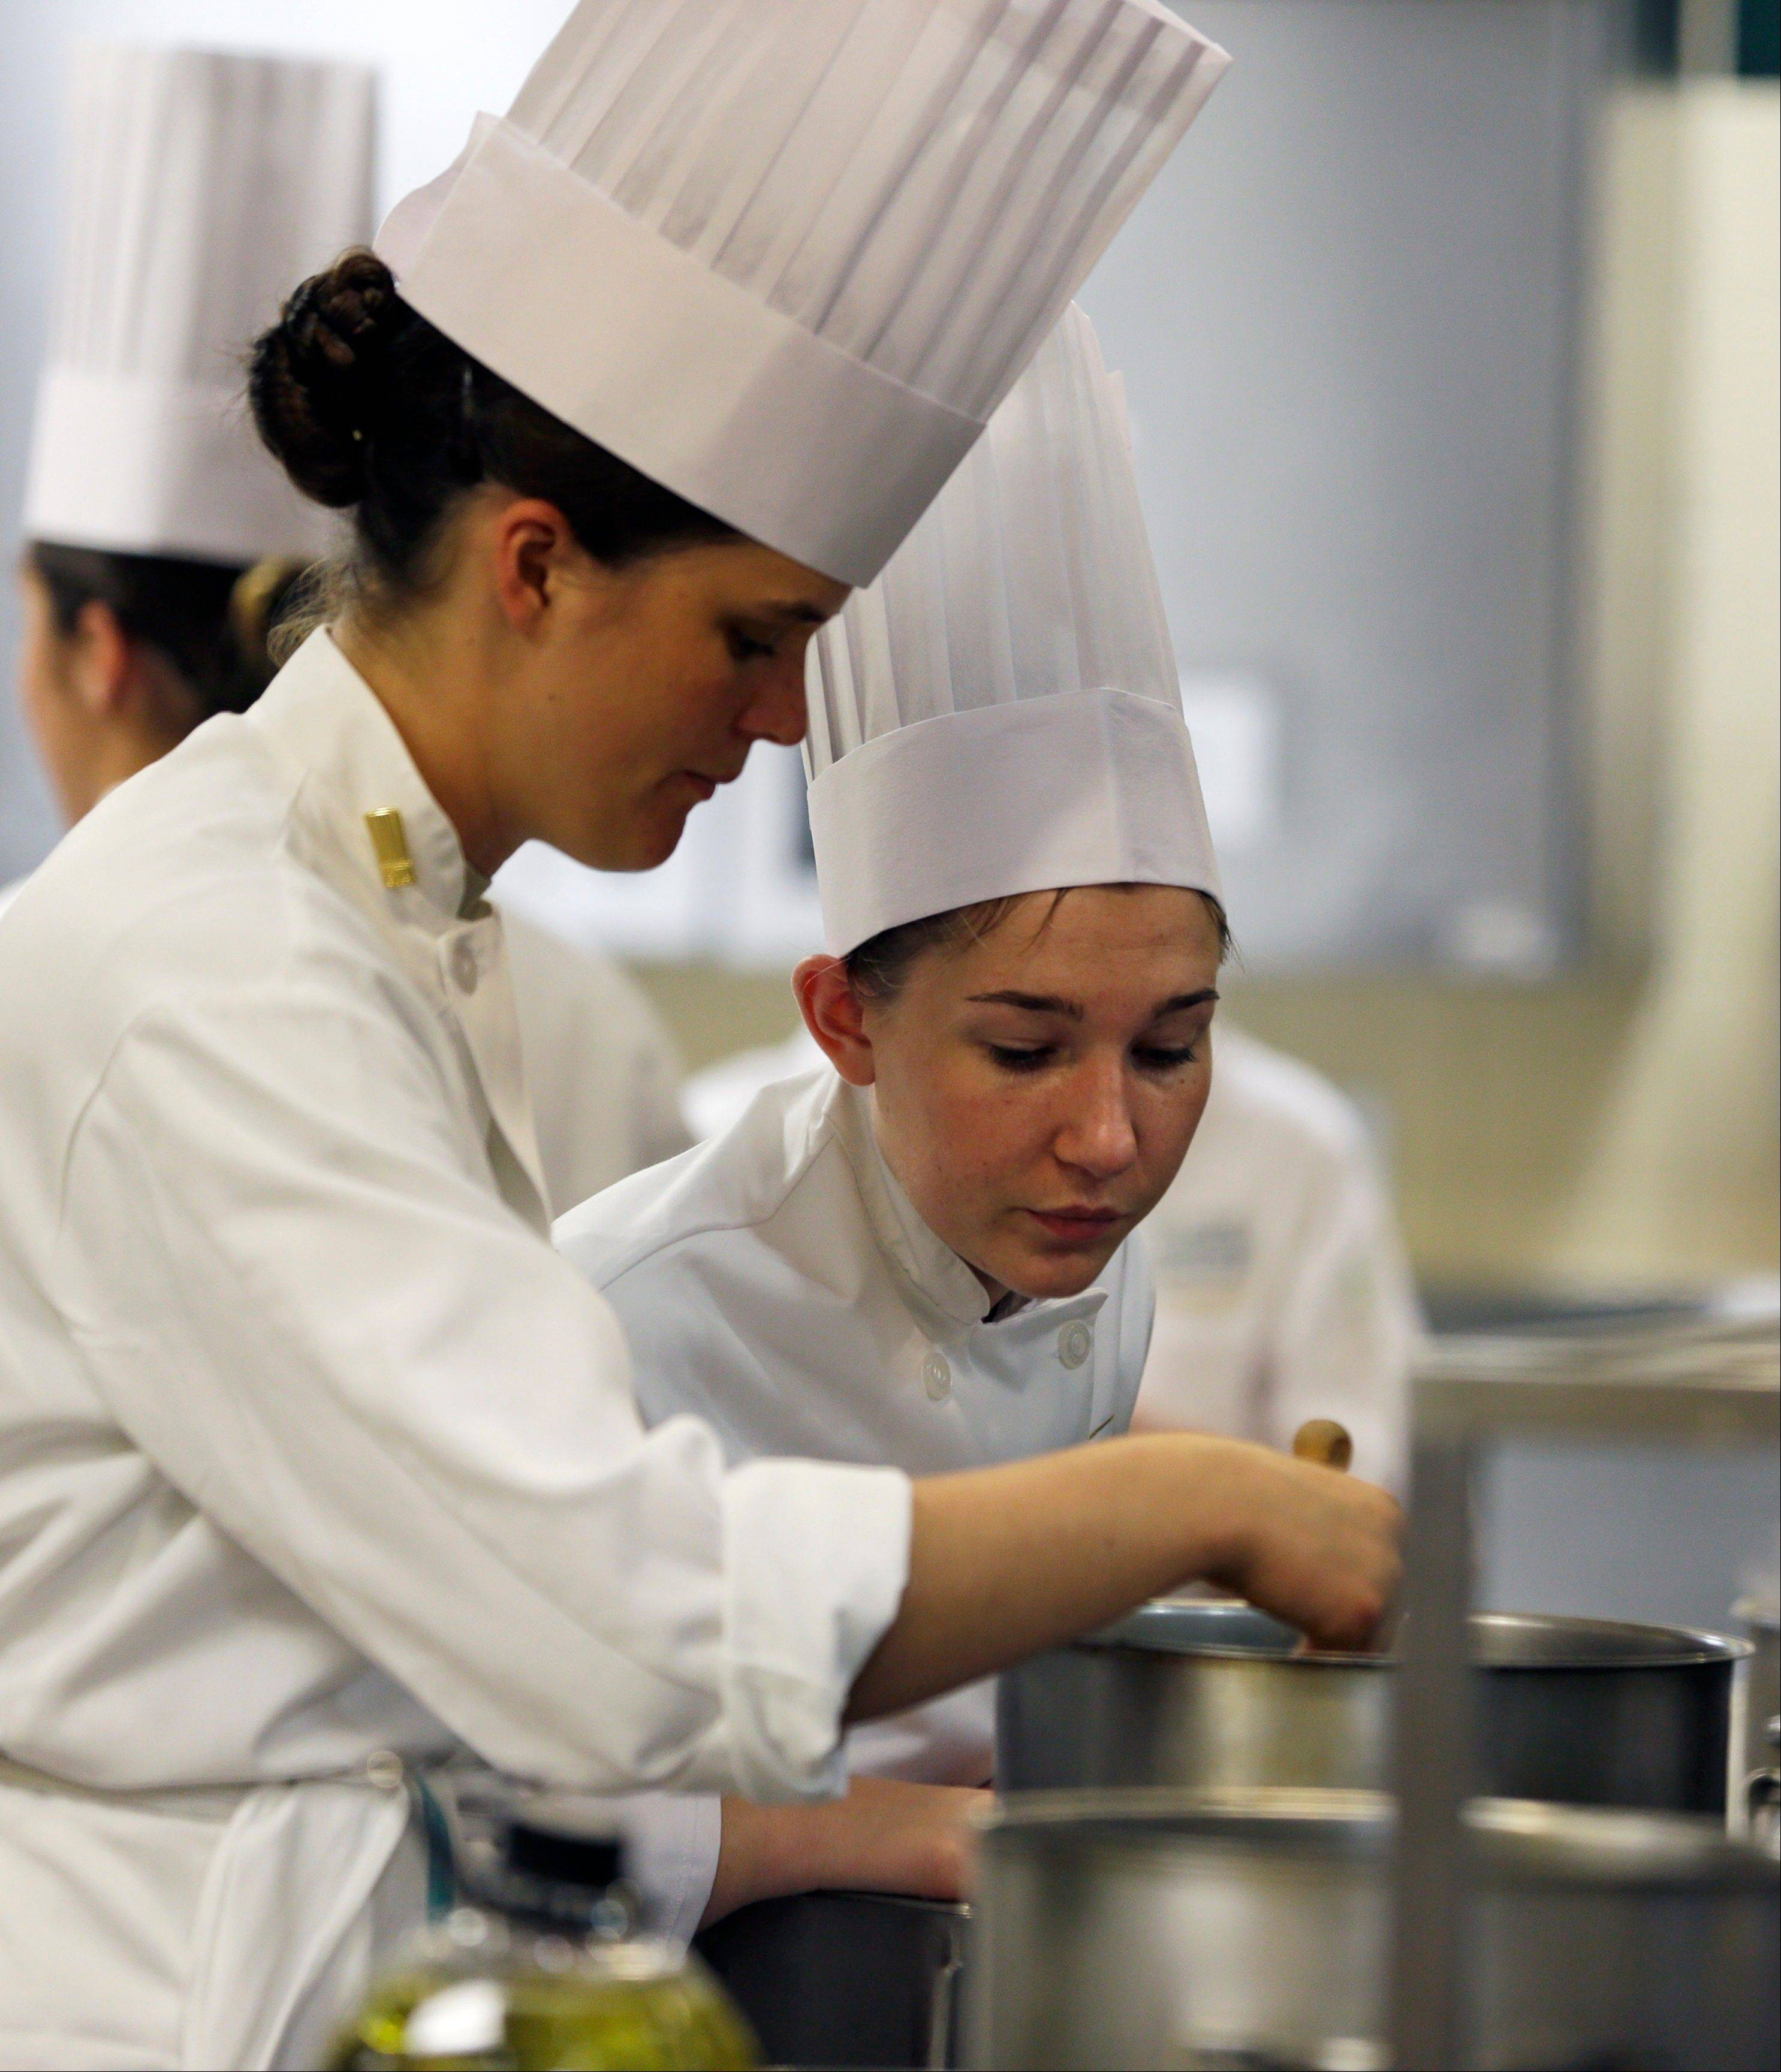 West Point Cadet Erin Mauldin of Albuquerque, N.M., left, and Culinary Institute of America student Clare Wagner of Detroit, work in a kitchen during an exchange program at the New York culinary schoo earlier this month.